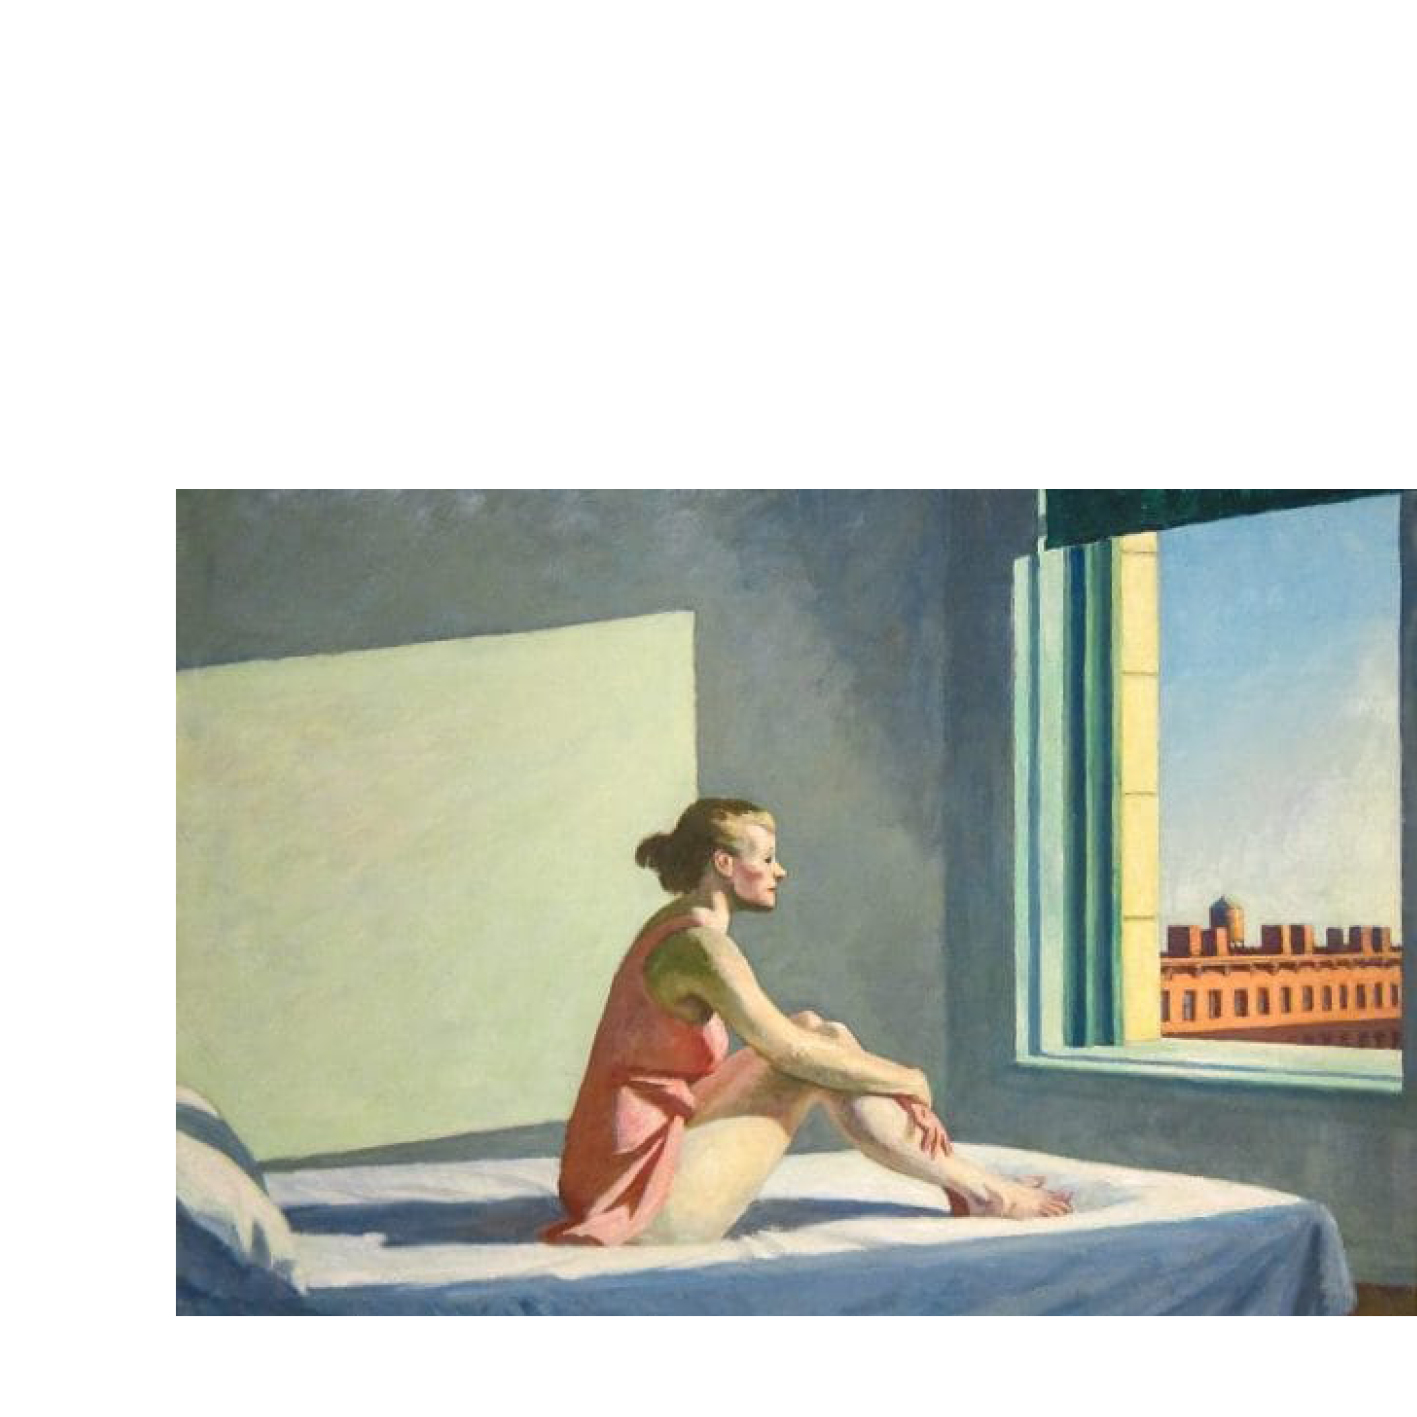 AN IMAGE REPRESENTING YOUR QUARANTINE. Eduard Hopper, Morning Sun, (1956) ~ @jay______jey